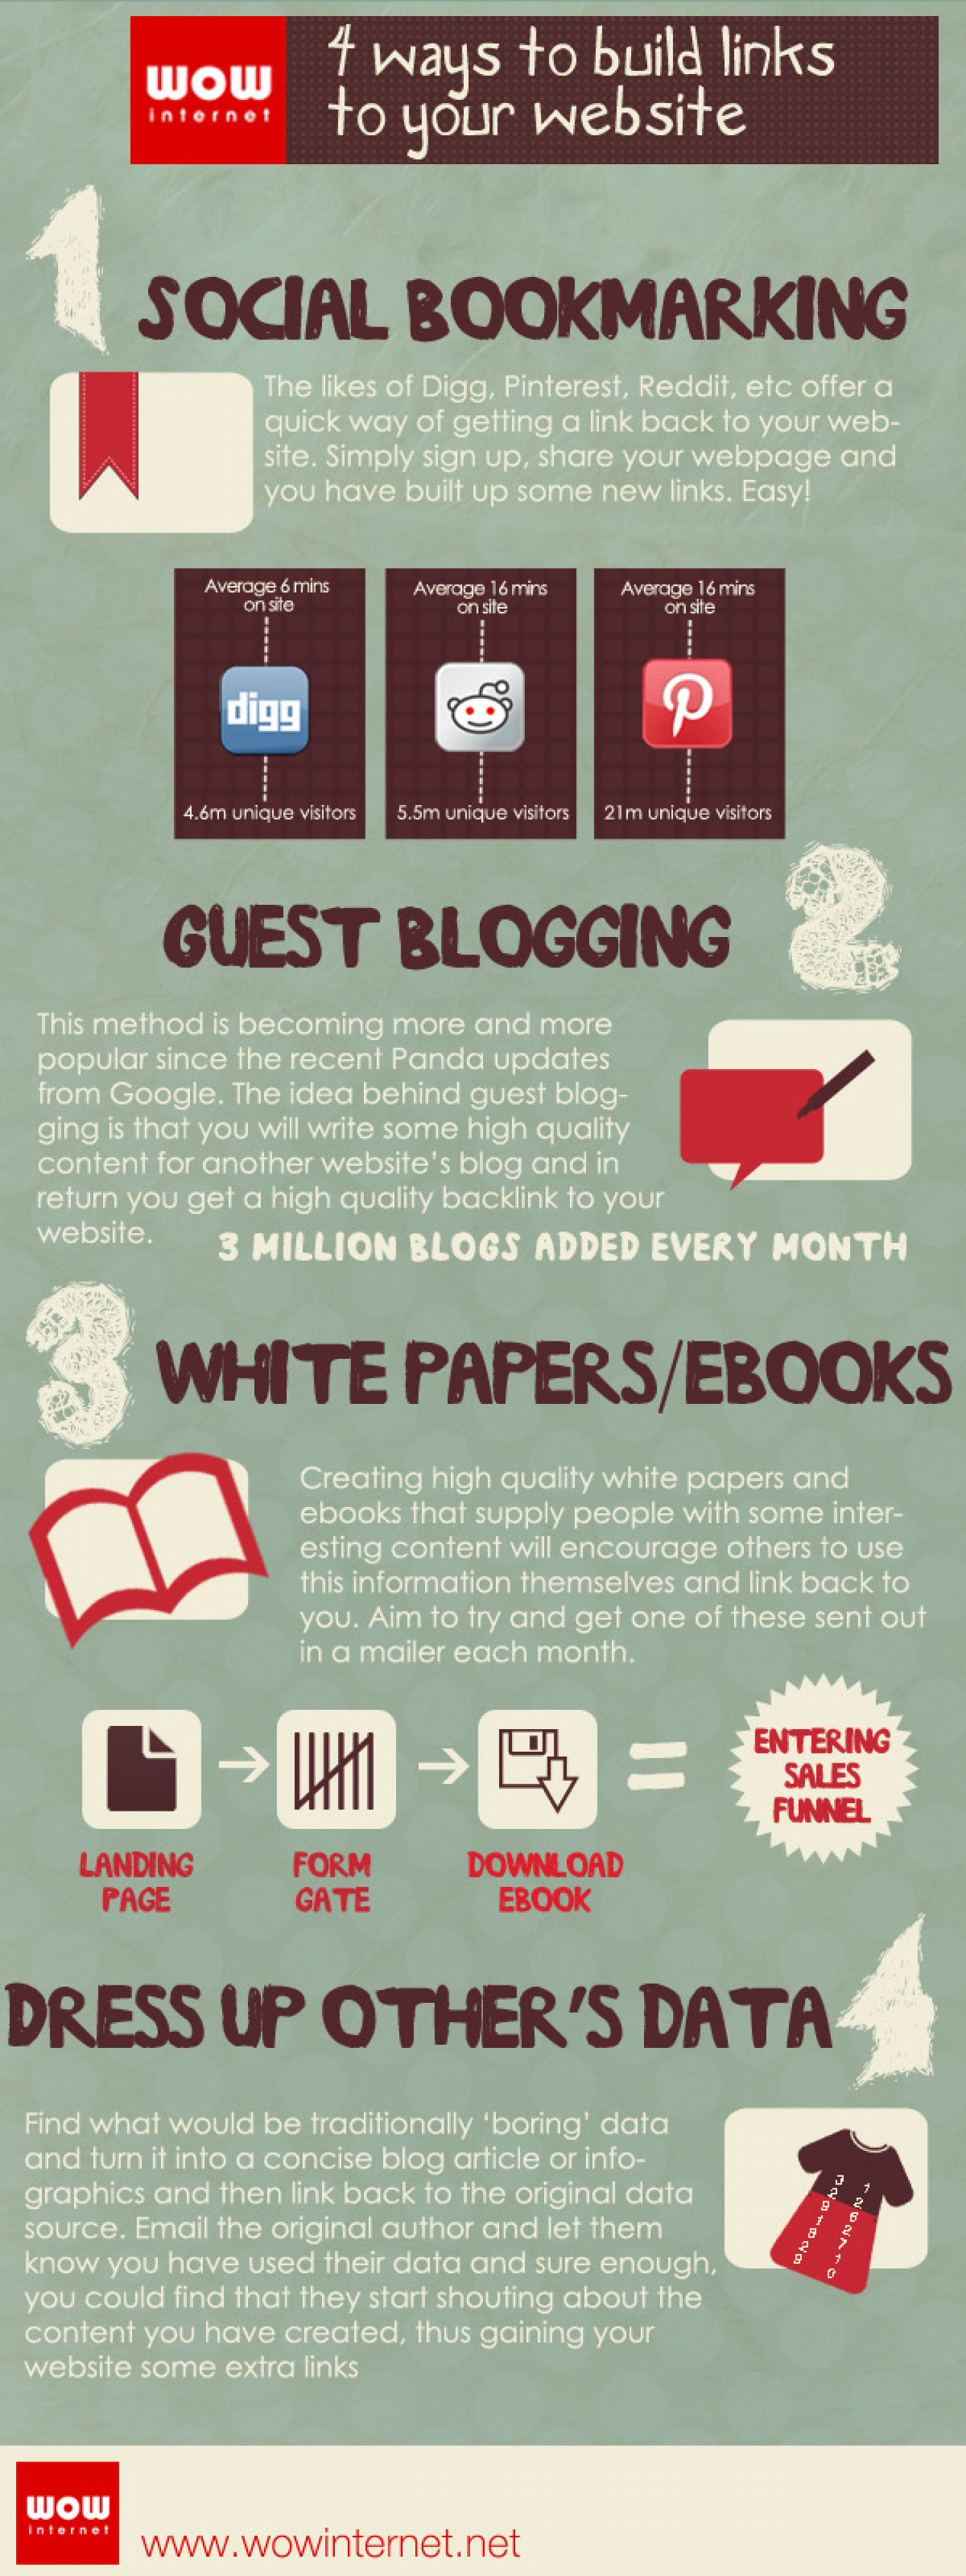 4 Ways to Build Links to Your Website Infographic